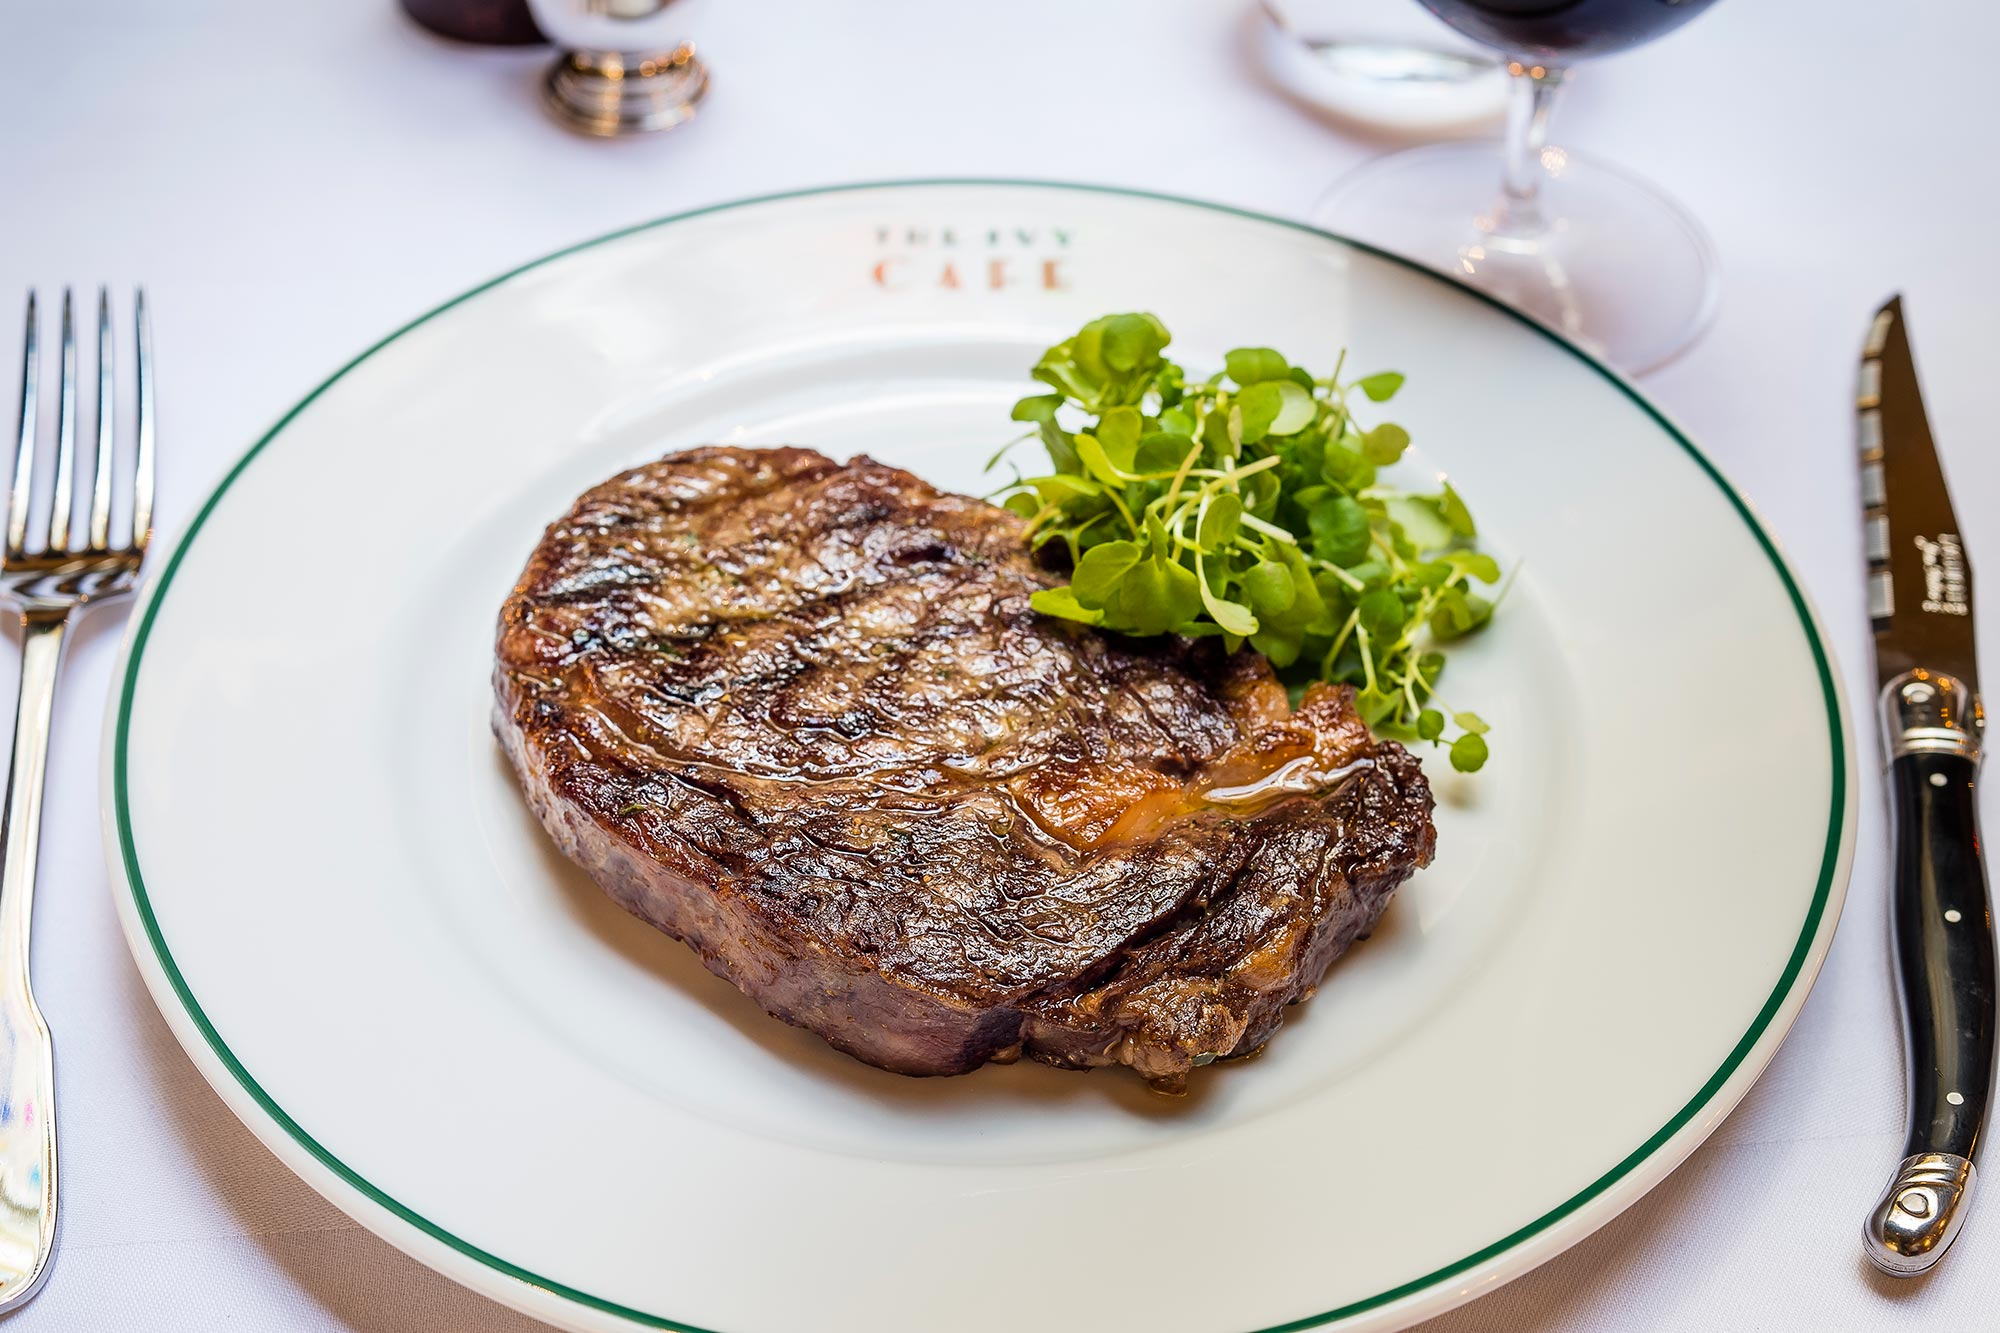 Dinner in Harrogate, Rib eye steak at The Ivy Harrogate Brasserie - The Ivy Harrogate